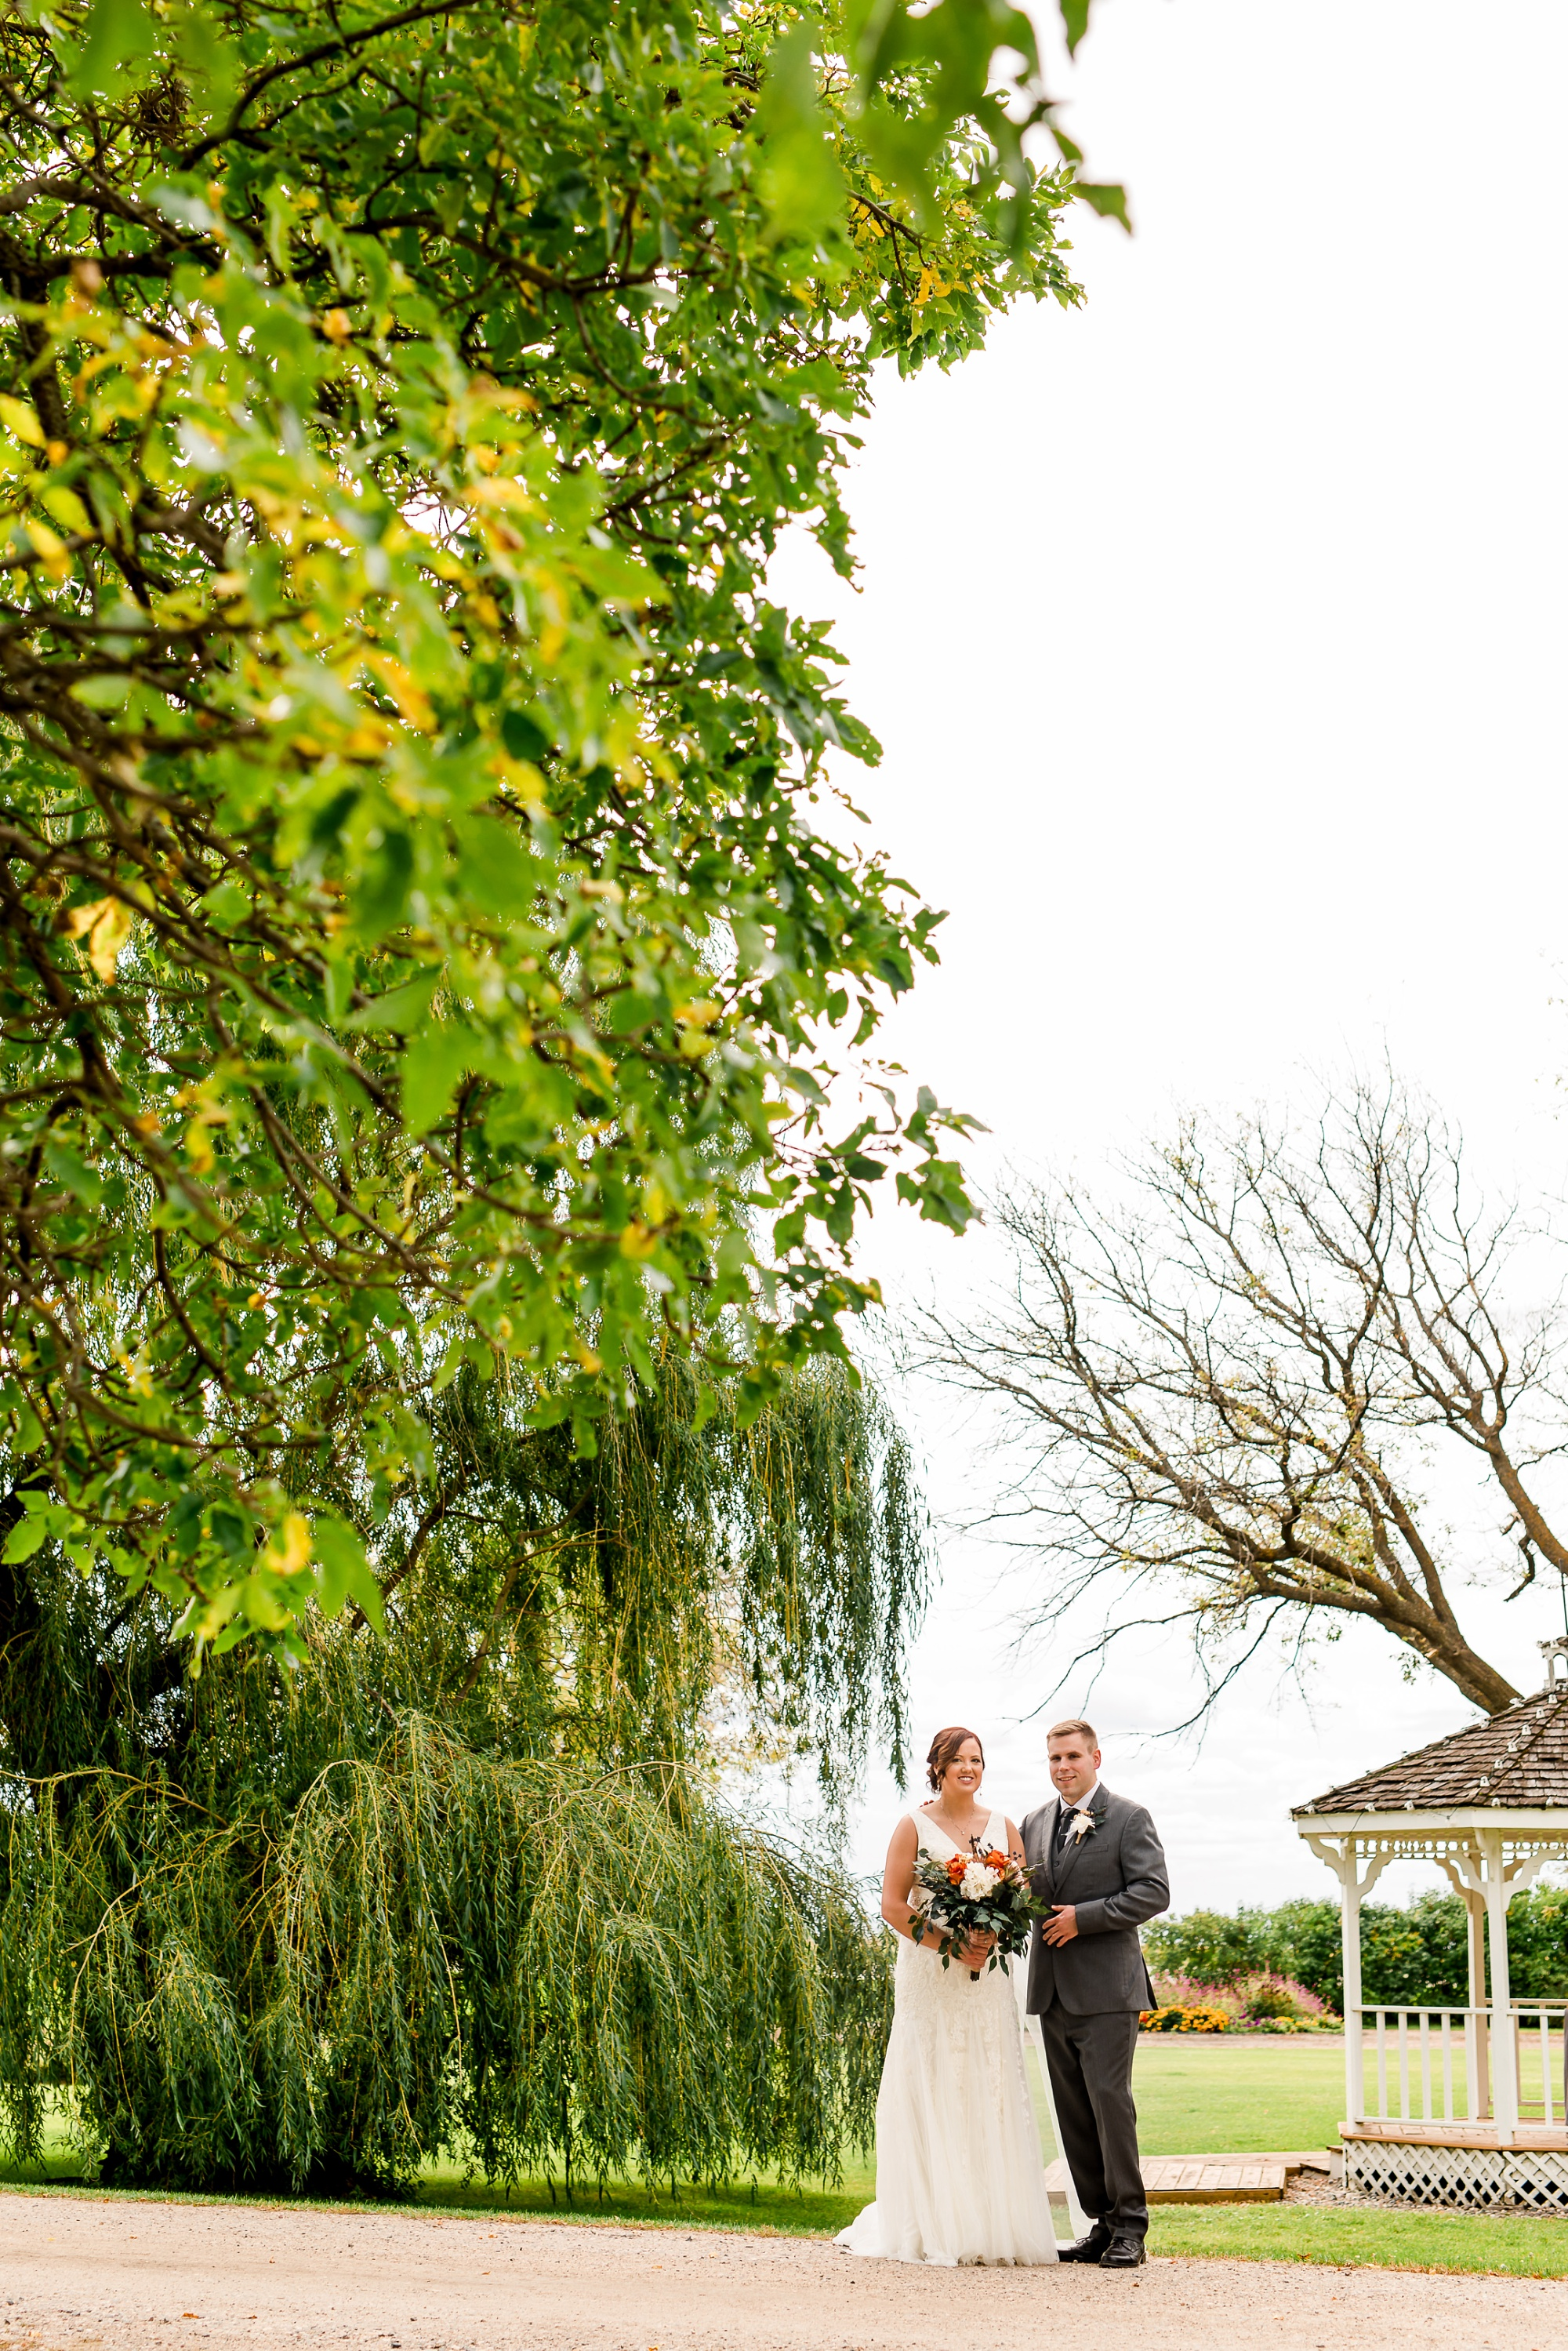 Amber Langerud Photography_Moohread, Outdoor, Barn Wedding at A Friends House_7078.jpg